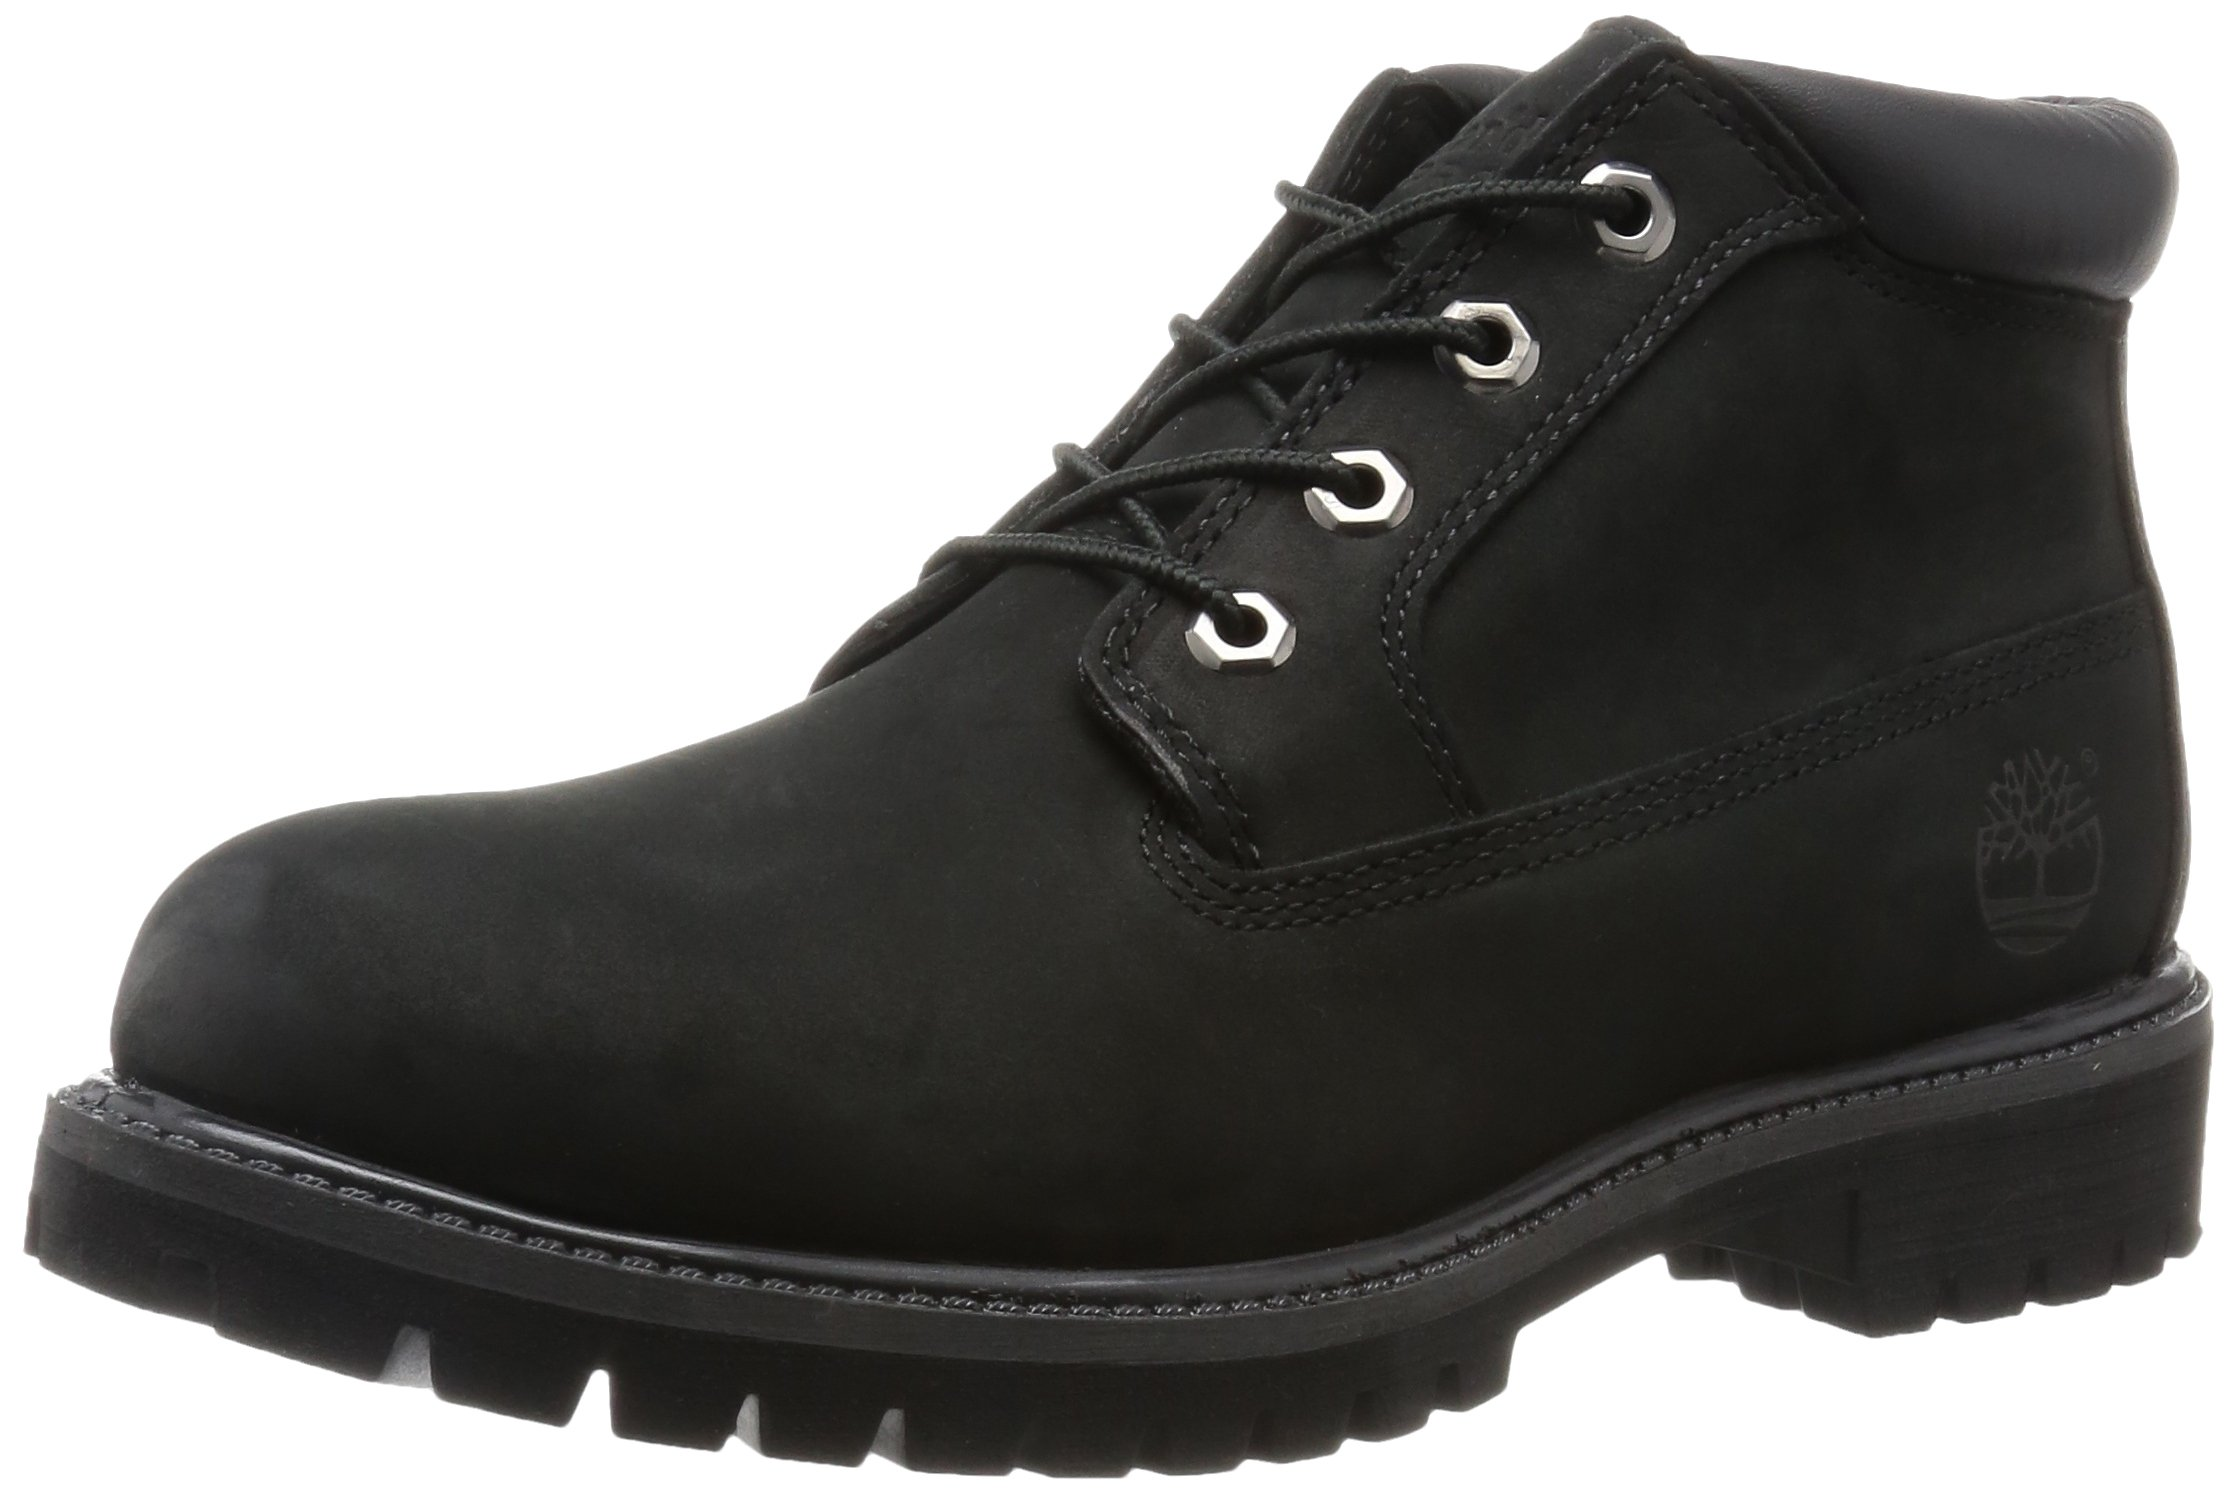 Details about Timberland Icon Chukka Boots Waterproof Black Nubuck Men Ankle Boots 32085